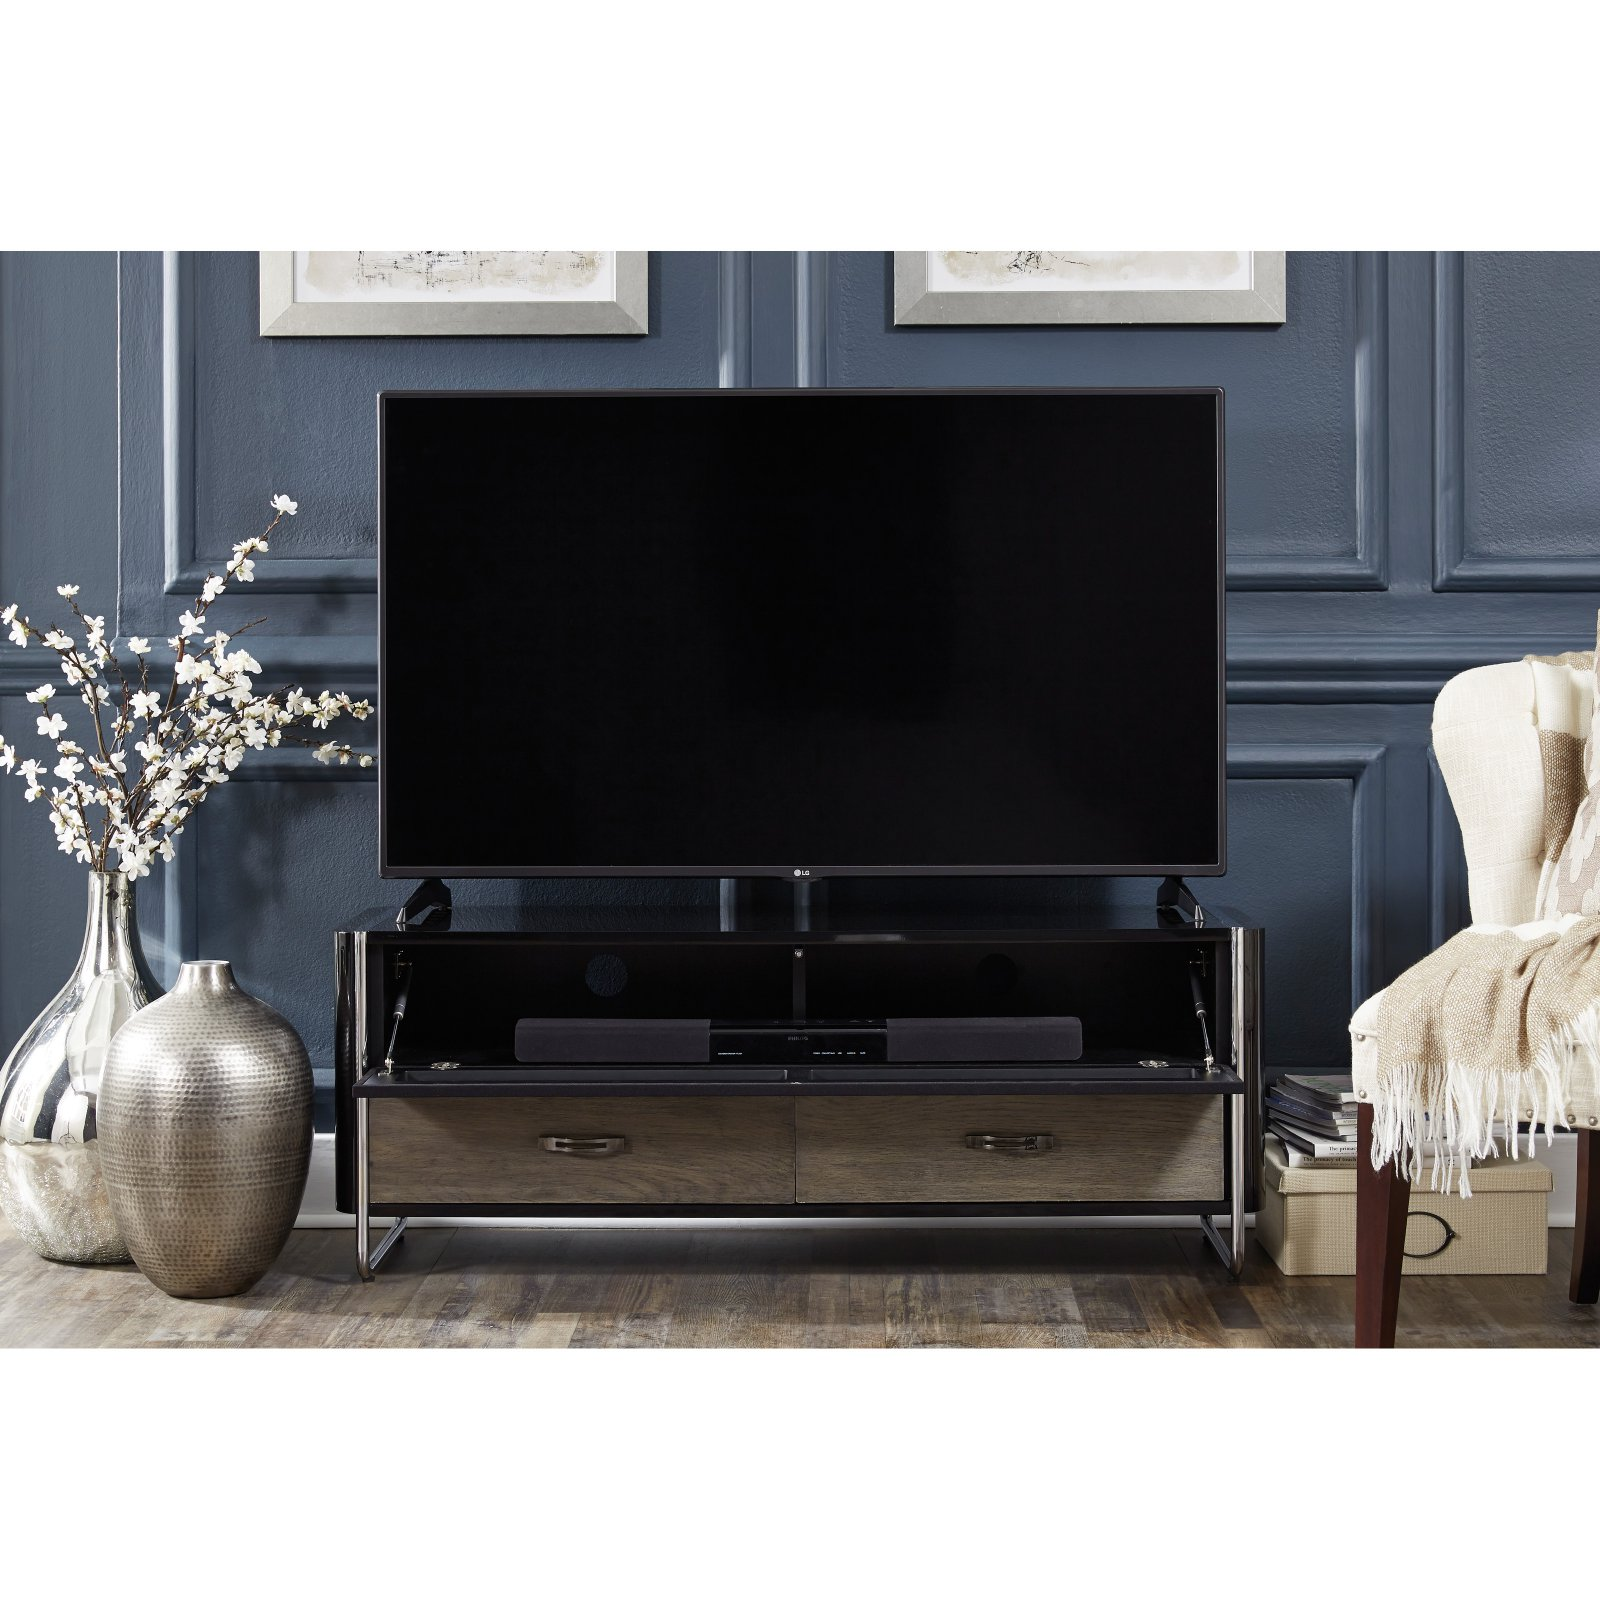 Sandberg Furniture Martin Svensson Home Hamilton 51.66 in. TV Stand